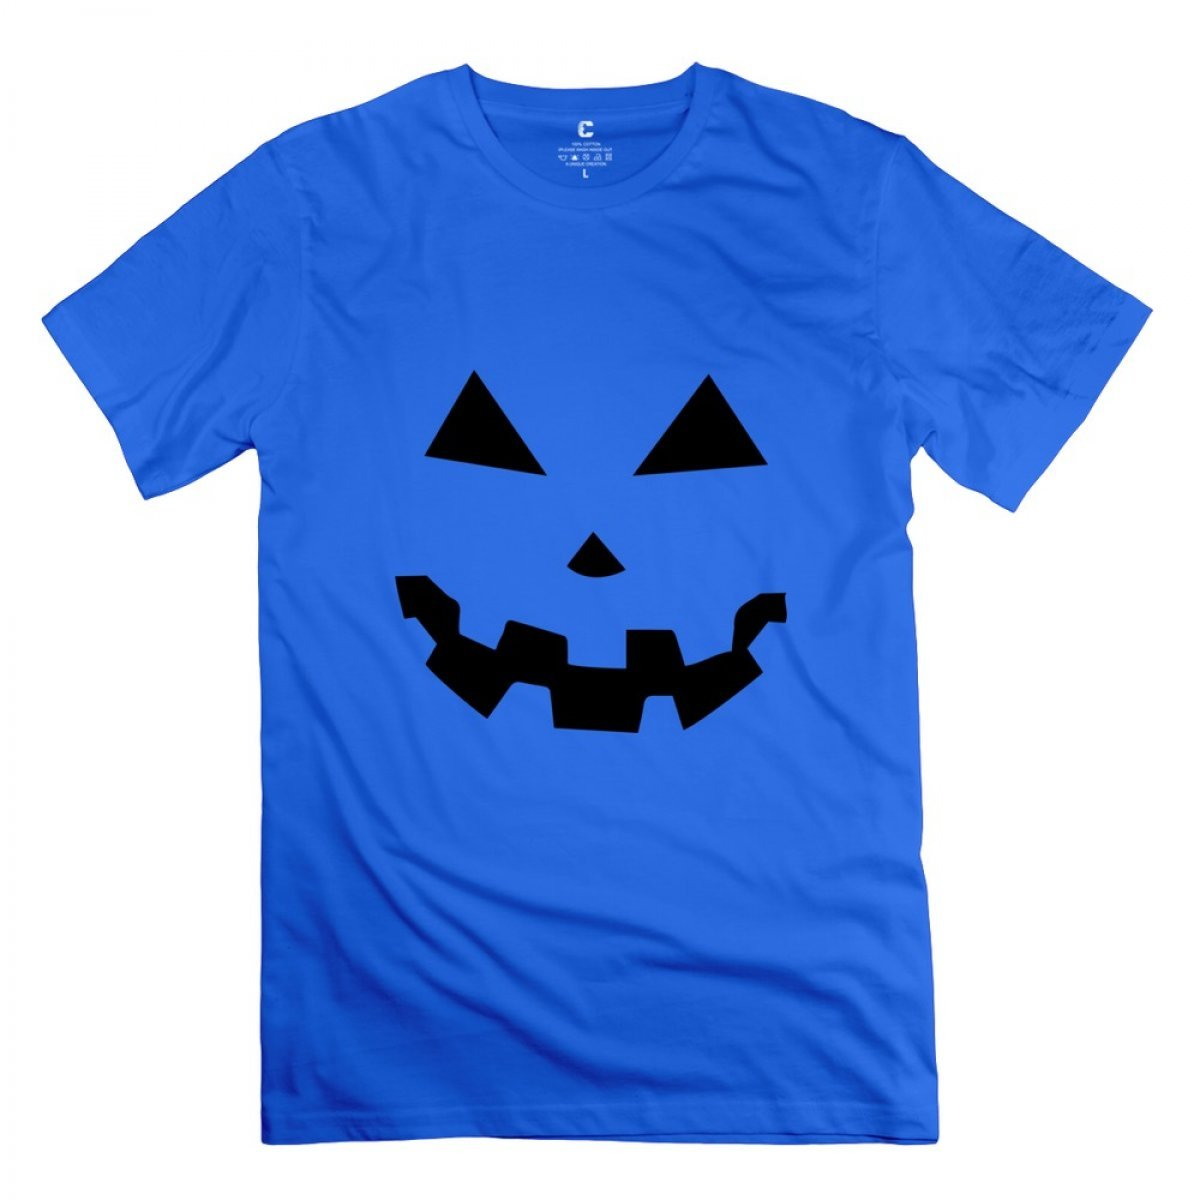 Liaoyang Jackolantern Two Halloween Pumpkins Royal Blue Adult Standard Weight Tshirt For